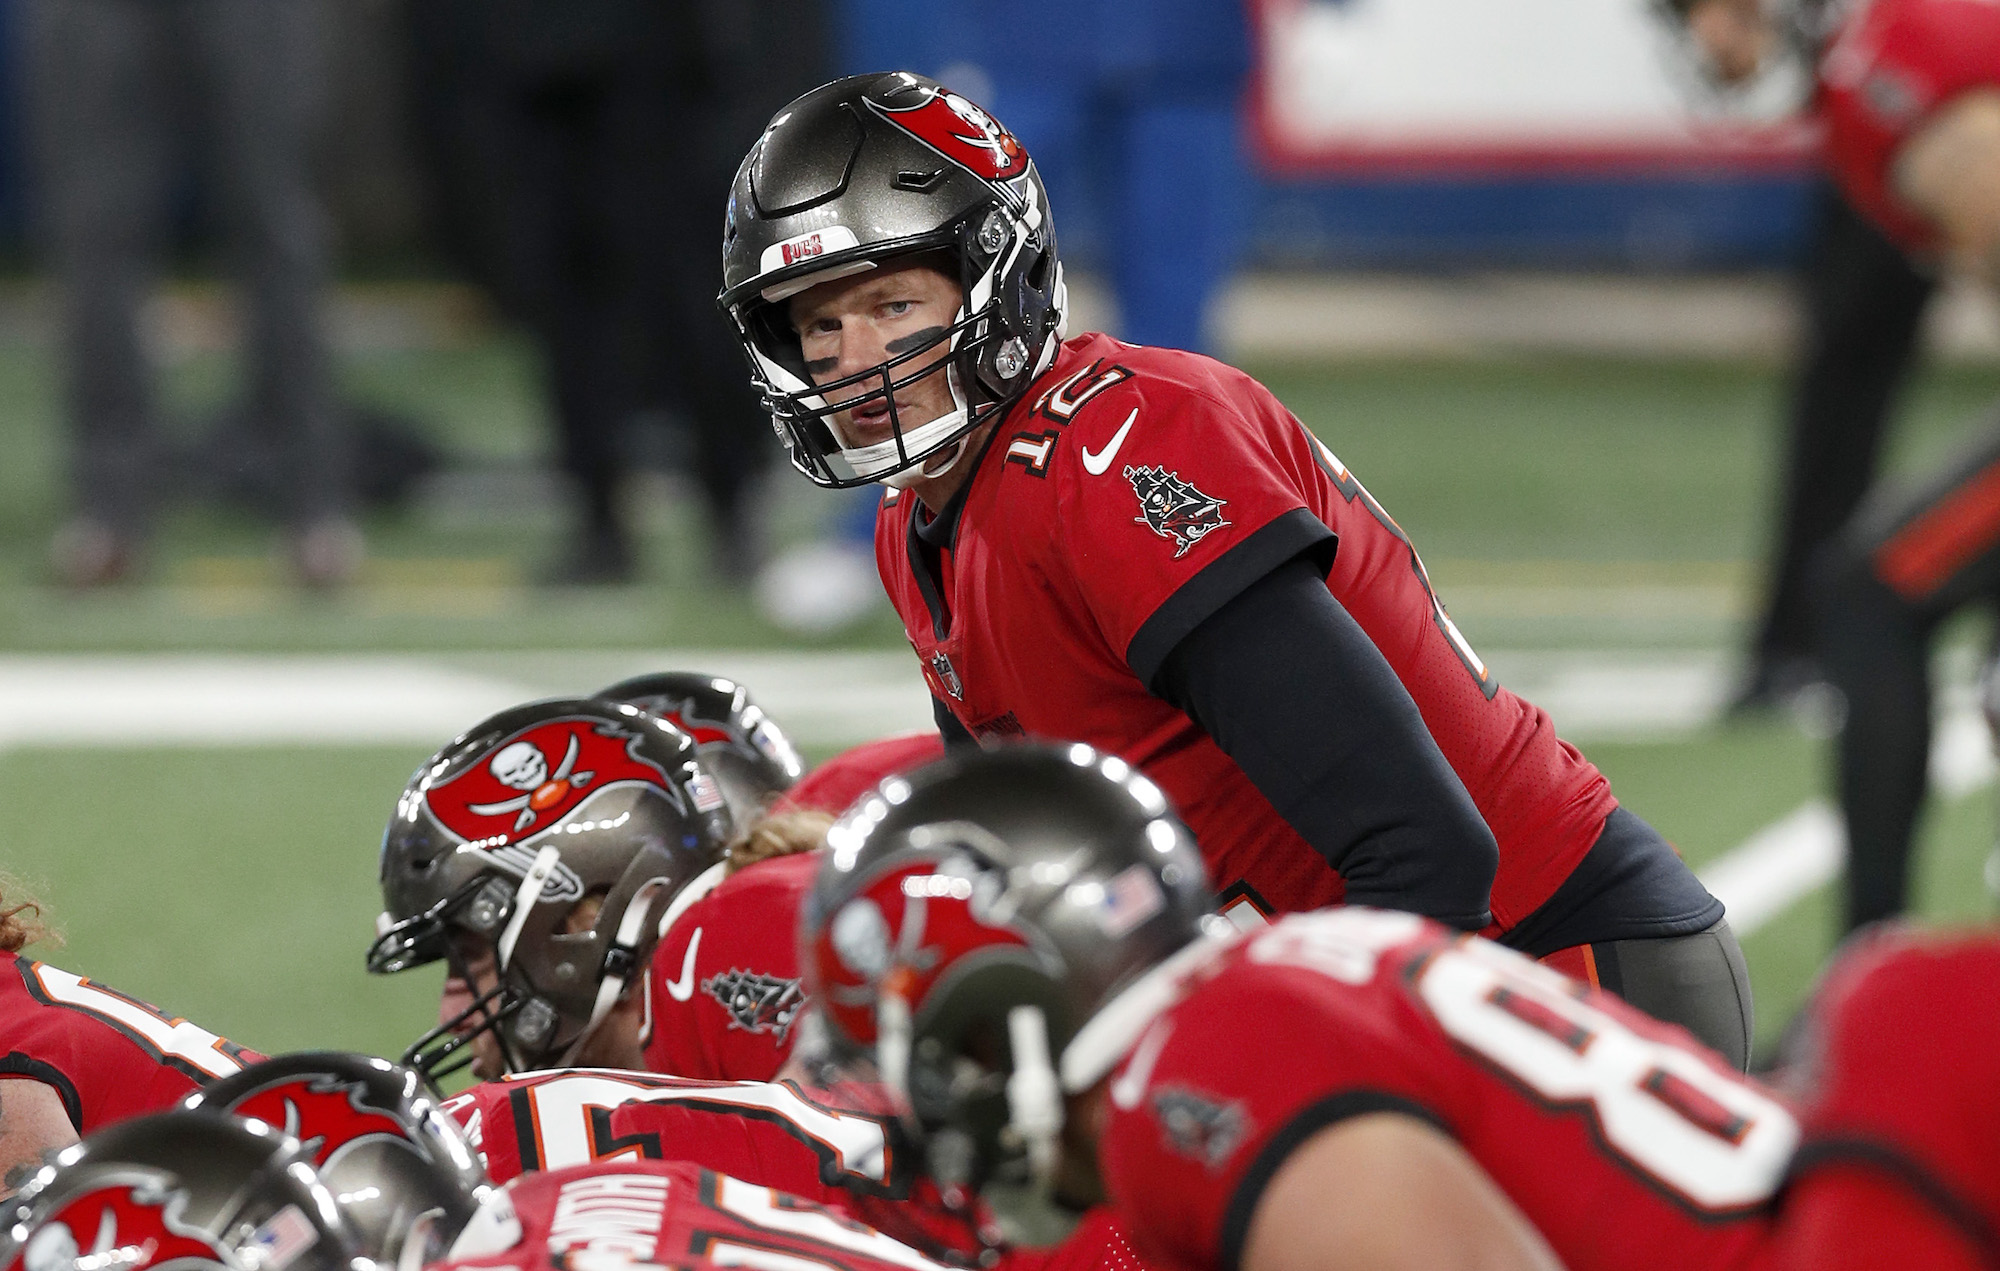 Tom Brady, #12 of the Tampa Bay Buccaneers, in action against the New York Giants at MetLife Stadium on November 02, 2020, in East Rutherford, New Jersey.